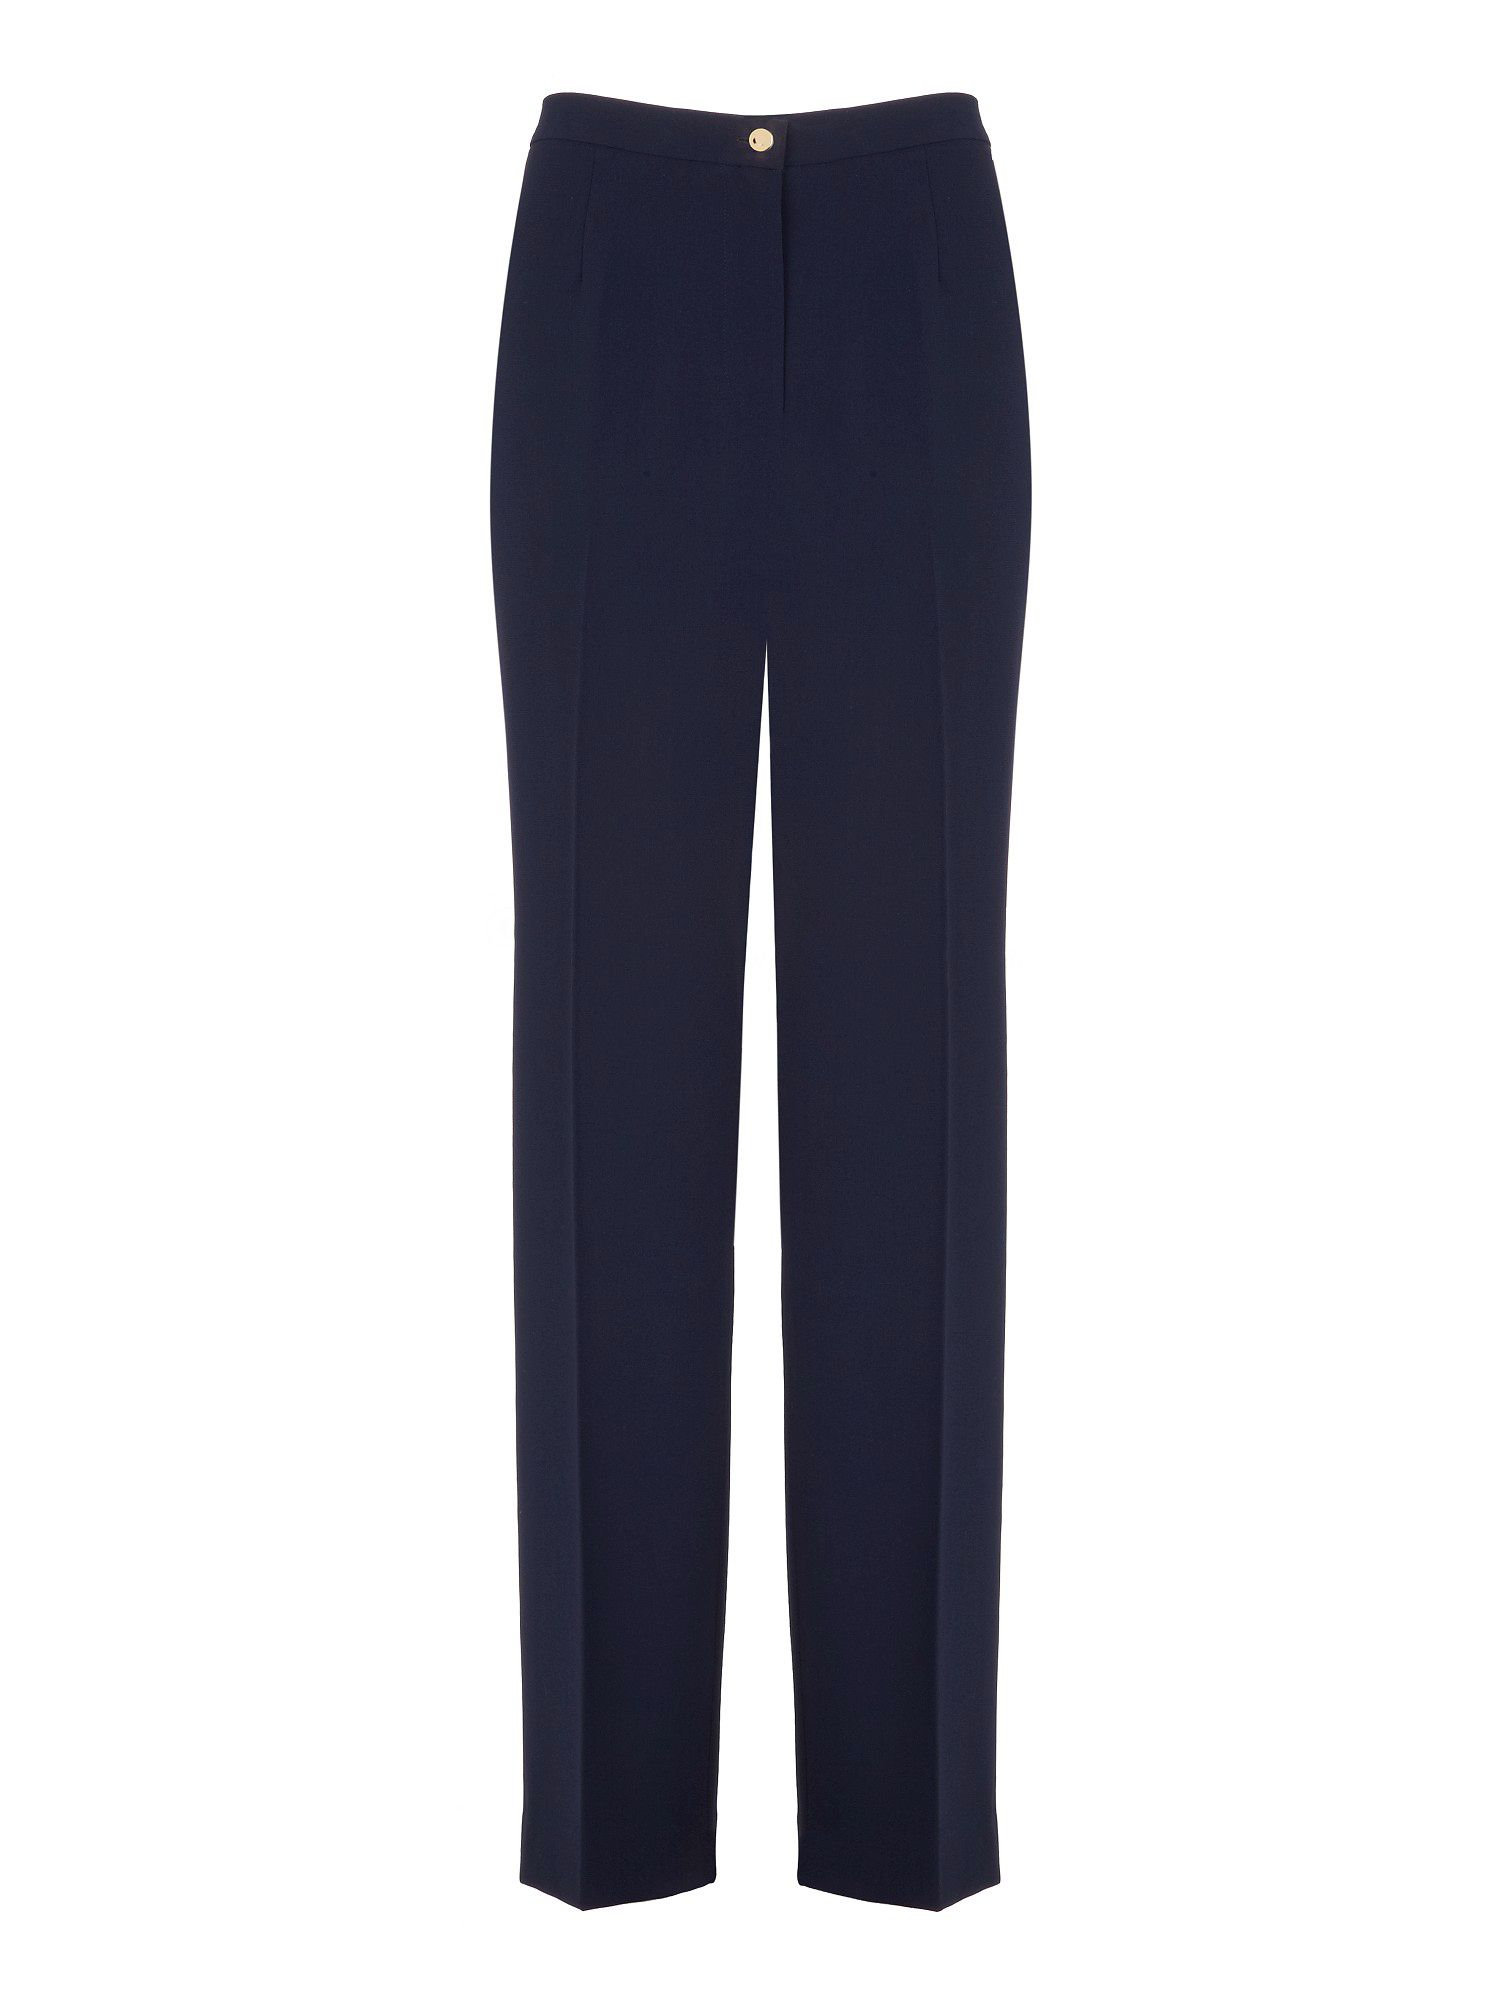 Navy crepe straight leg trouser